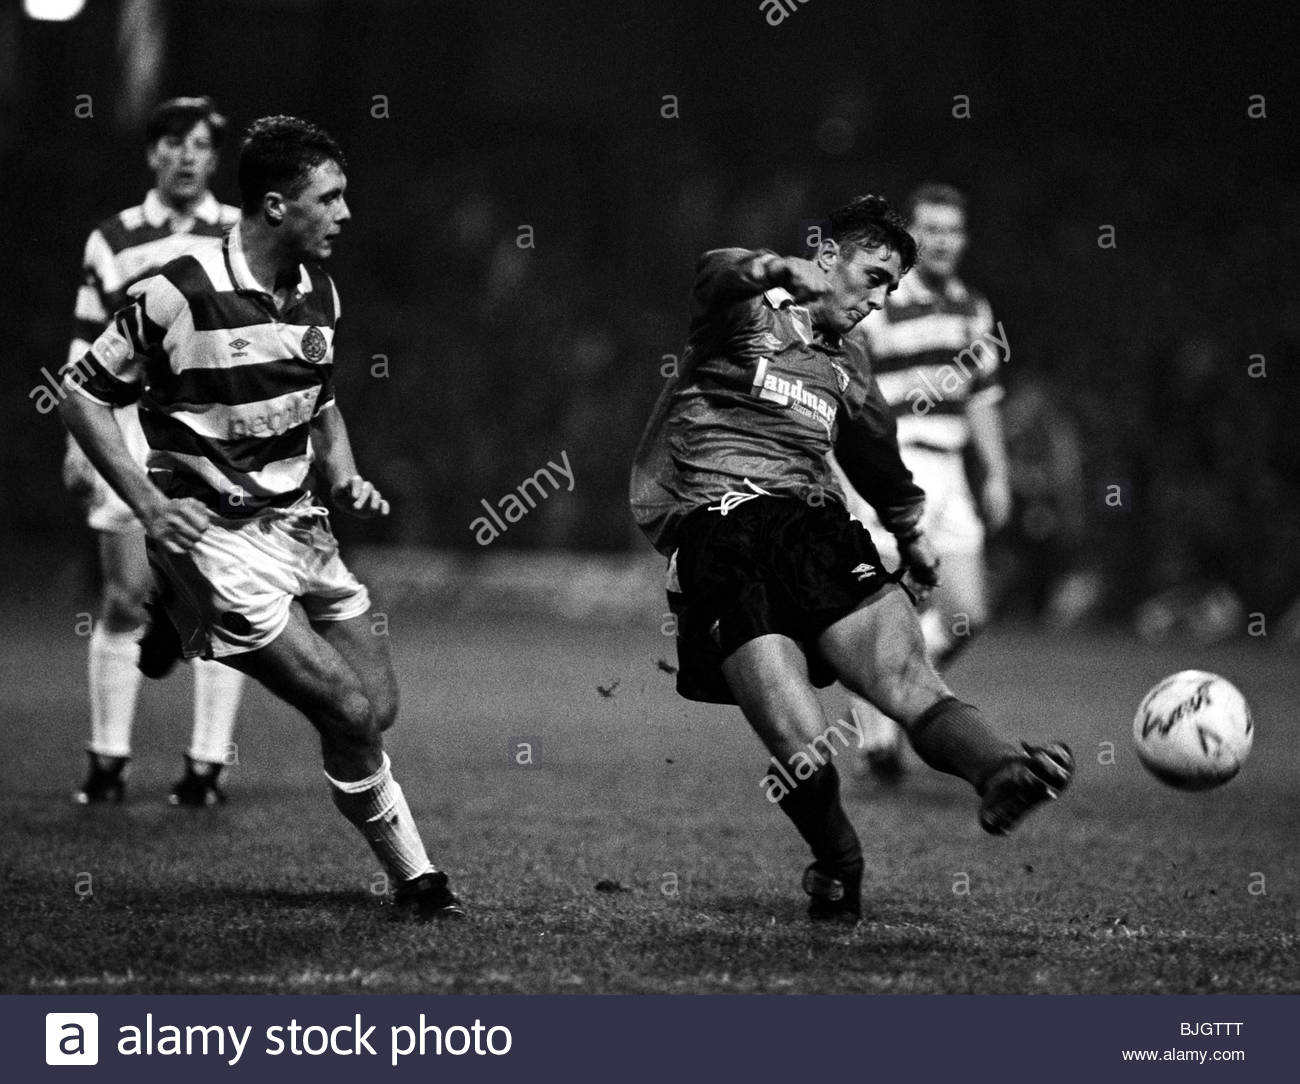 30/11/91 PREMIER DIVISION CELTIC v DUNFERMLINE (1-0) CELTIC PARK - GLASGOW Dunfermline's Scott Leitch (right) - Stock Image